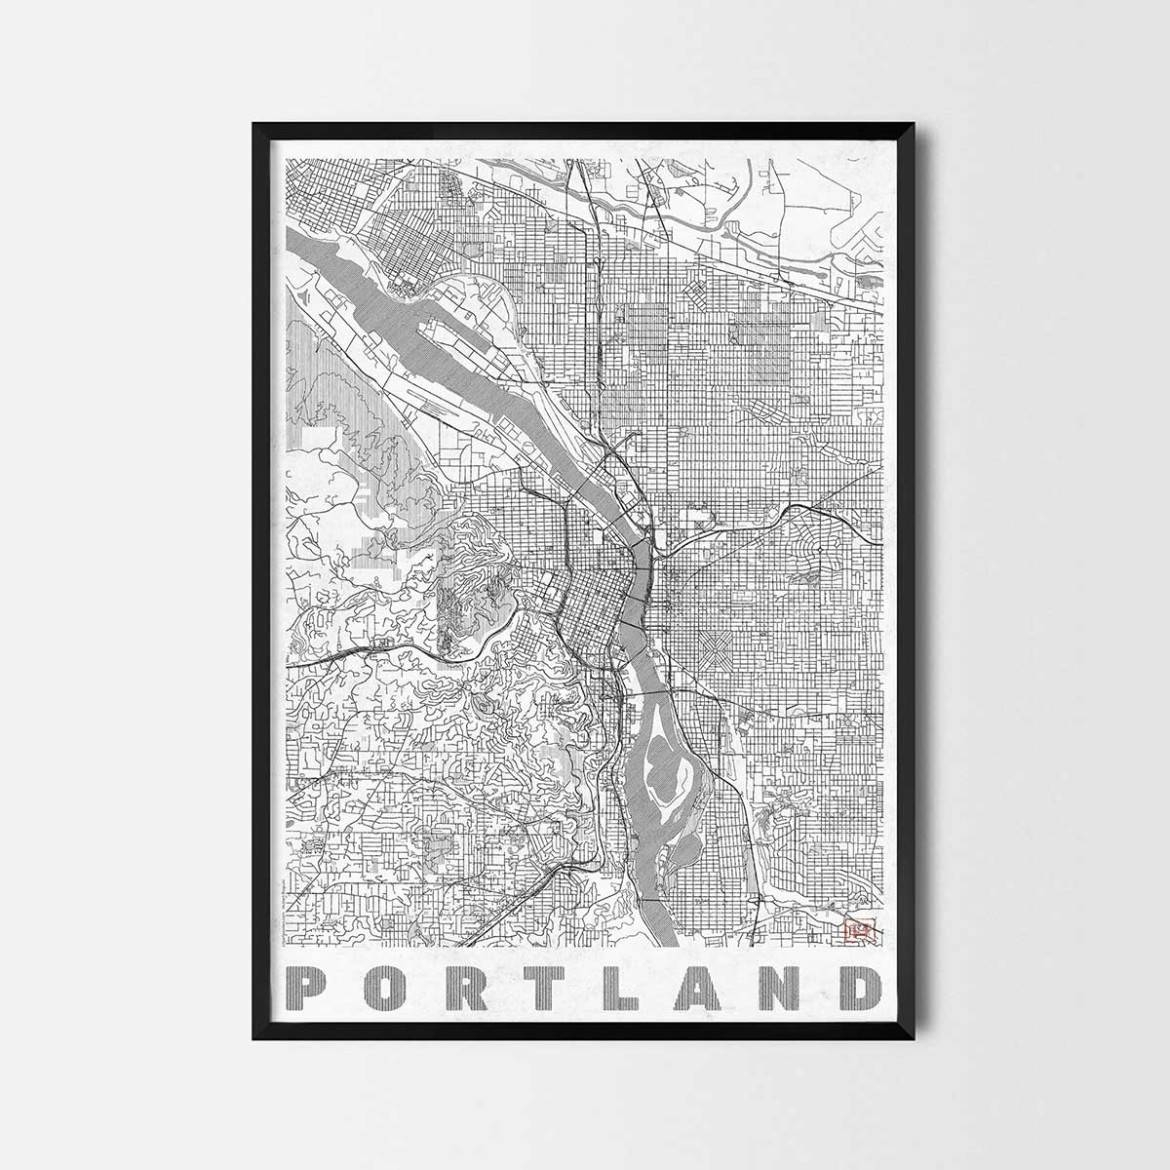 Portland Gift – Map Art Prints And Posters, Home Decor Gifts For Most Current Portland Map Wall Art (View 18 of 20)